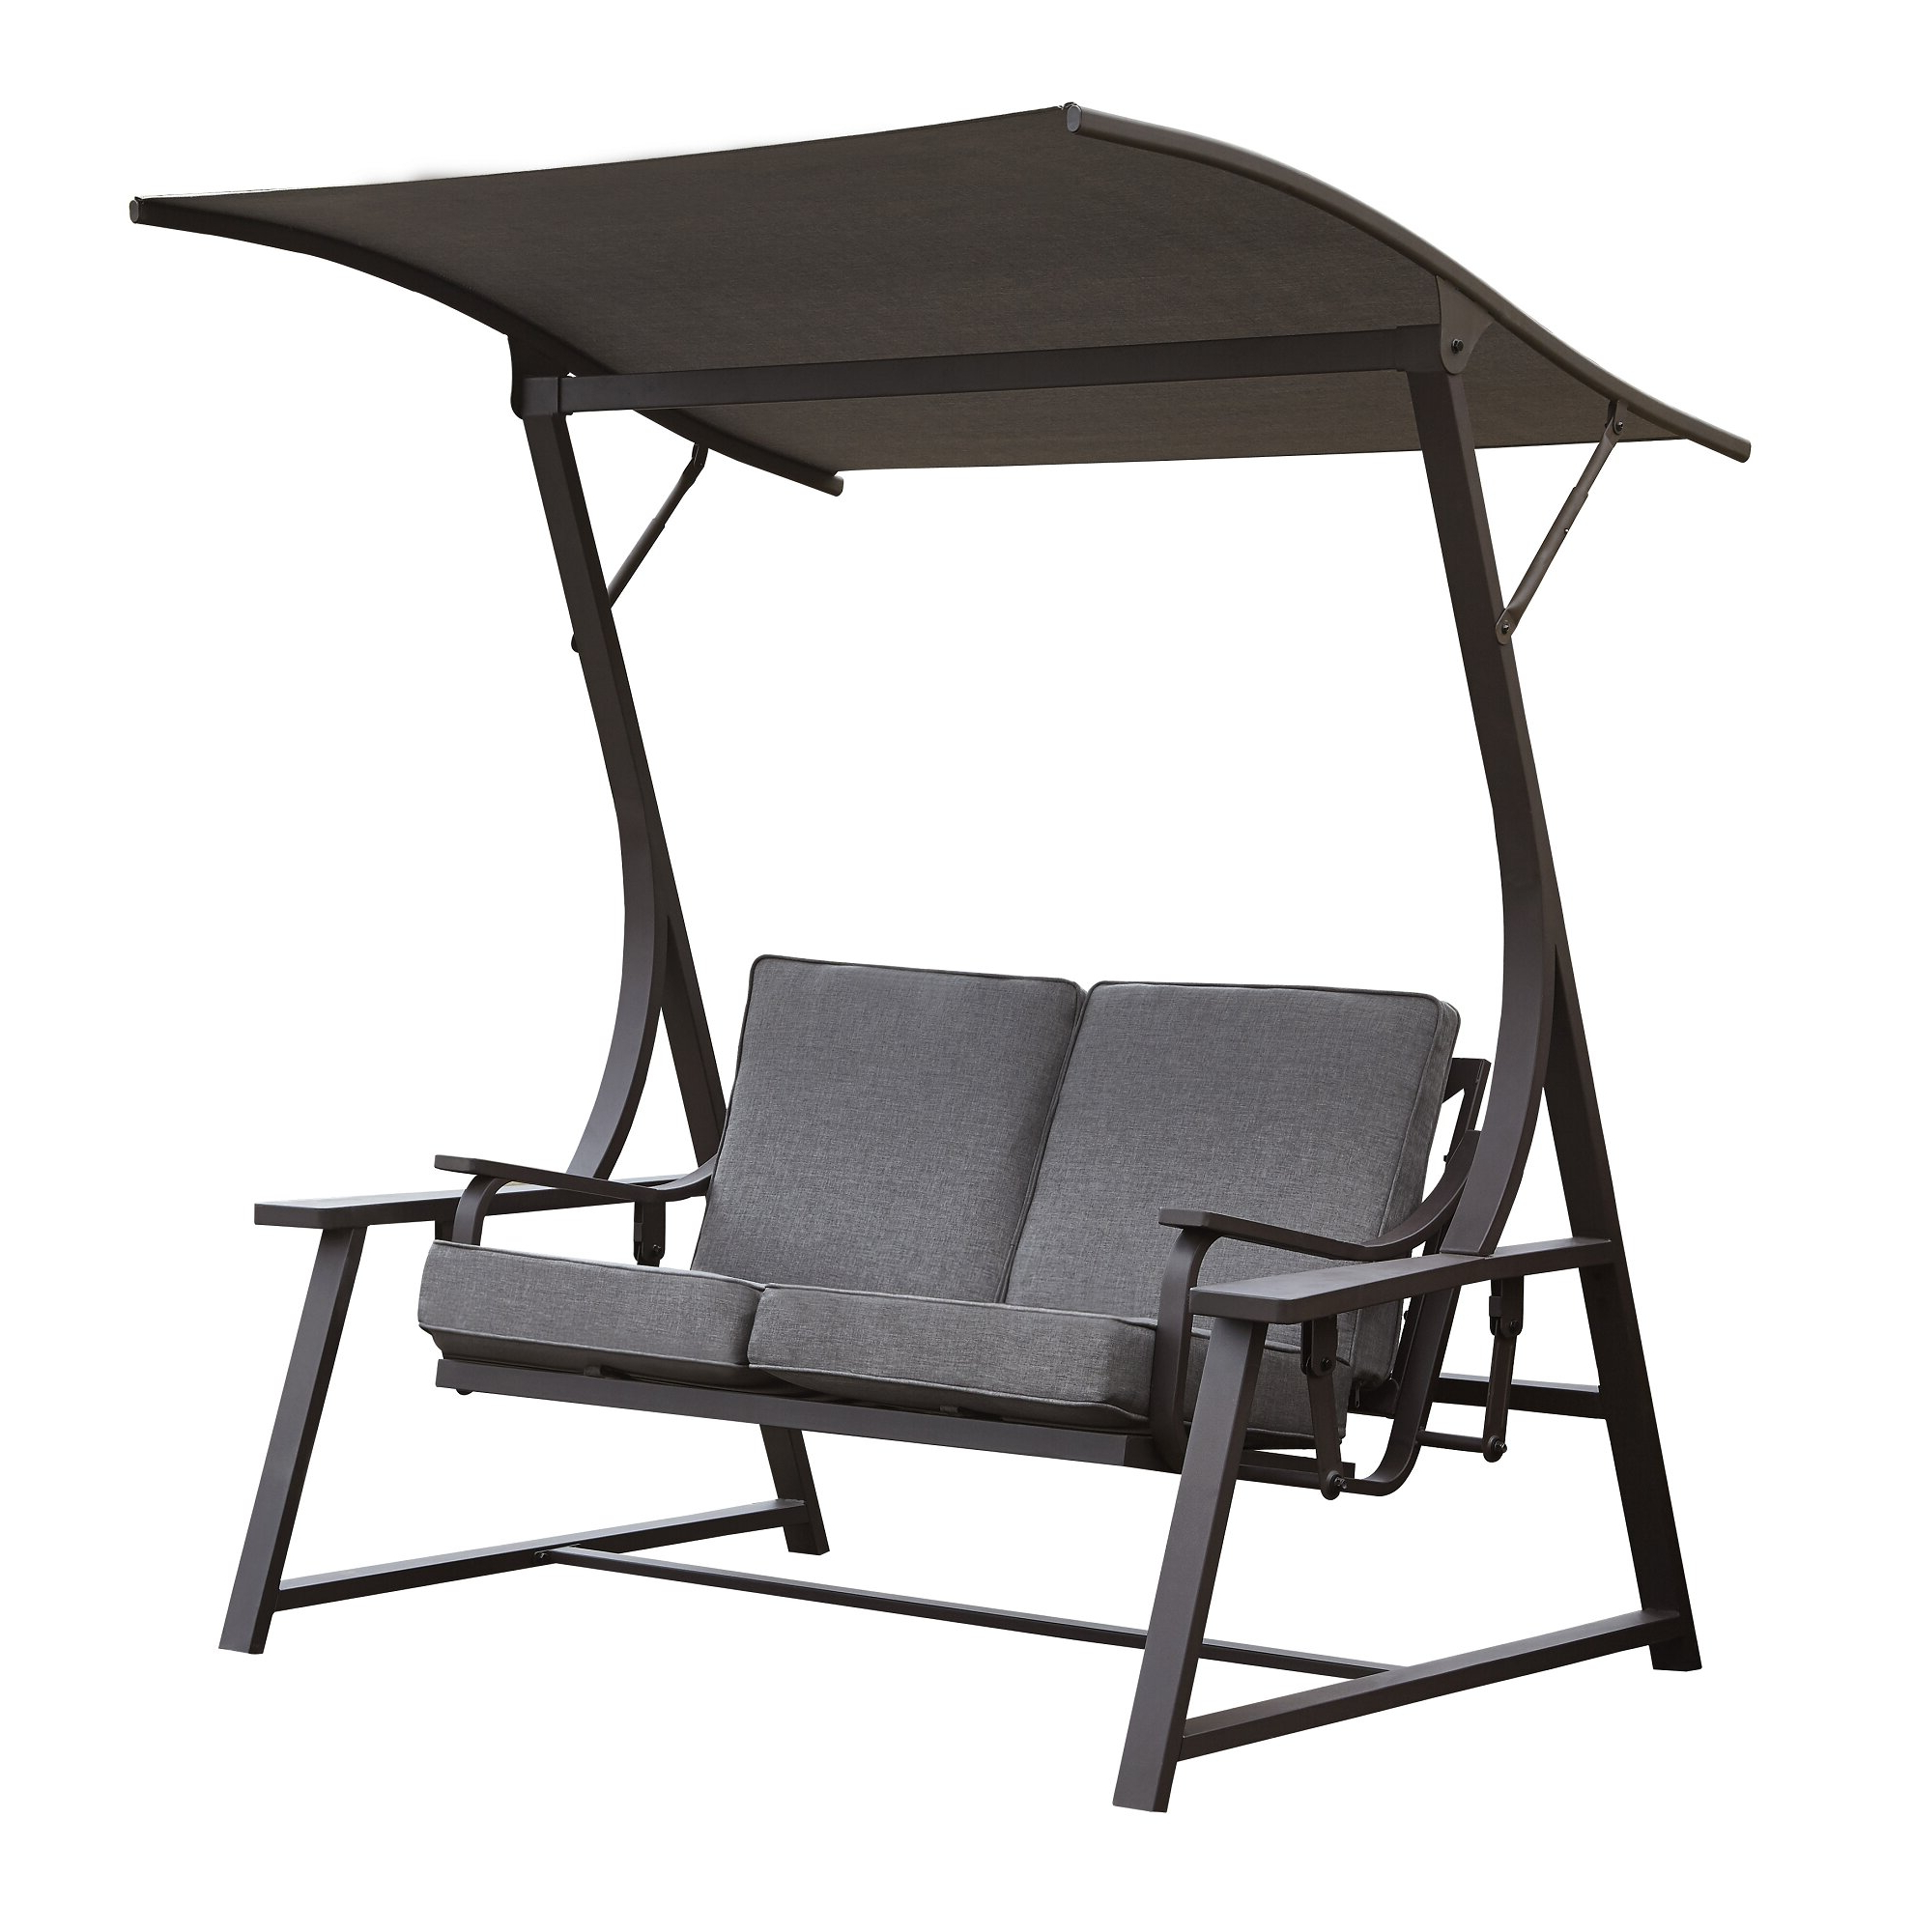 Marquette Glider Porch Swing With Stand With Widely Used Wicker Glider Outdoor Porch Swings With Stand (View 15 of 30)